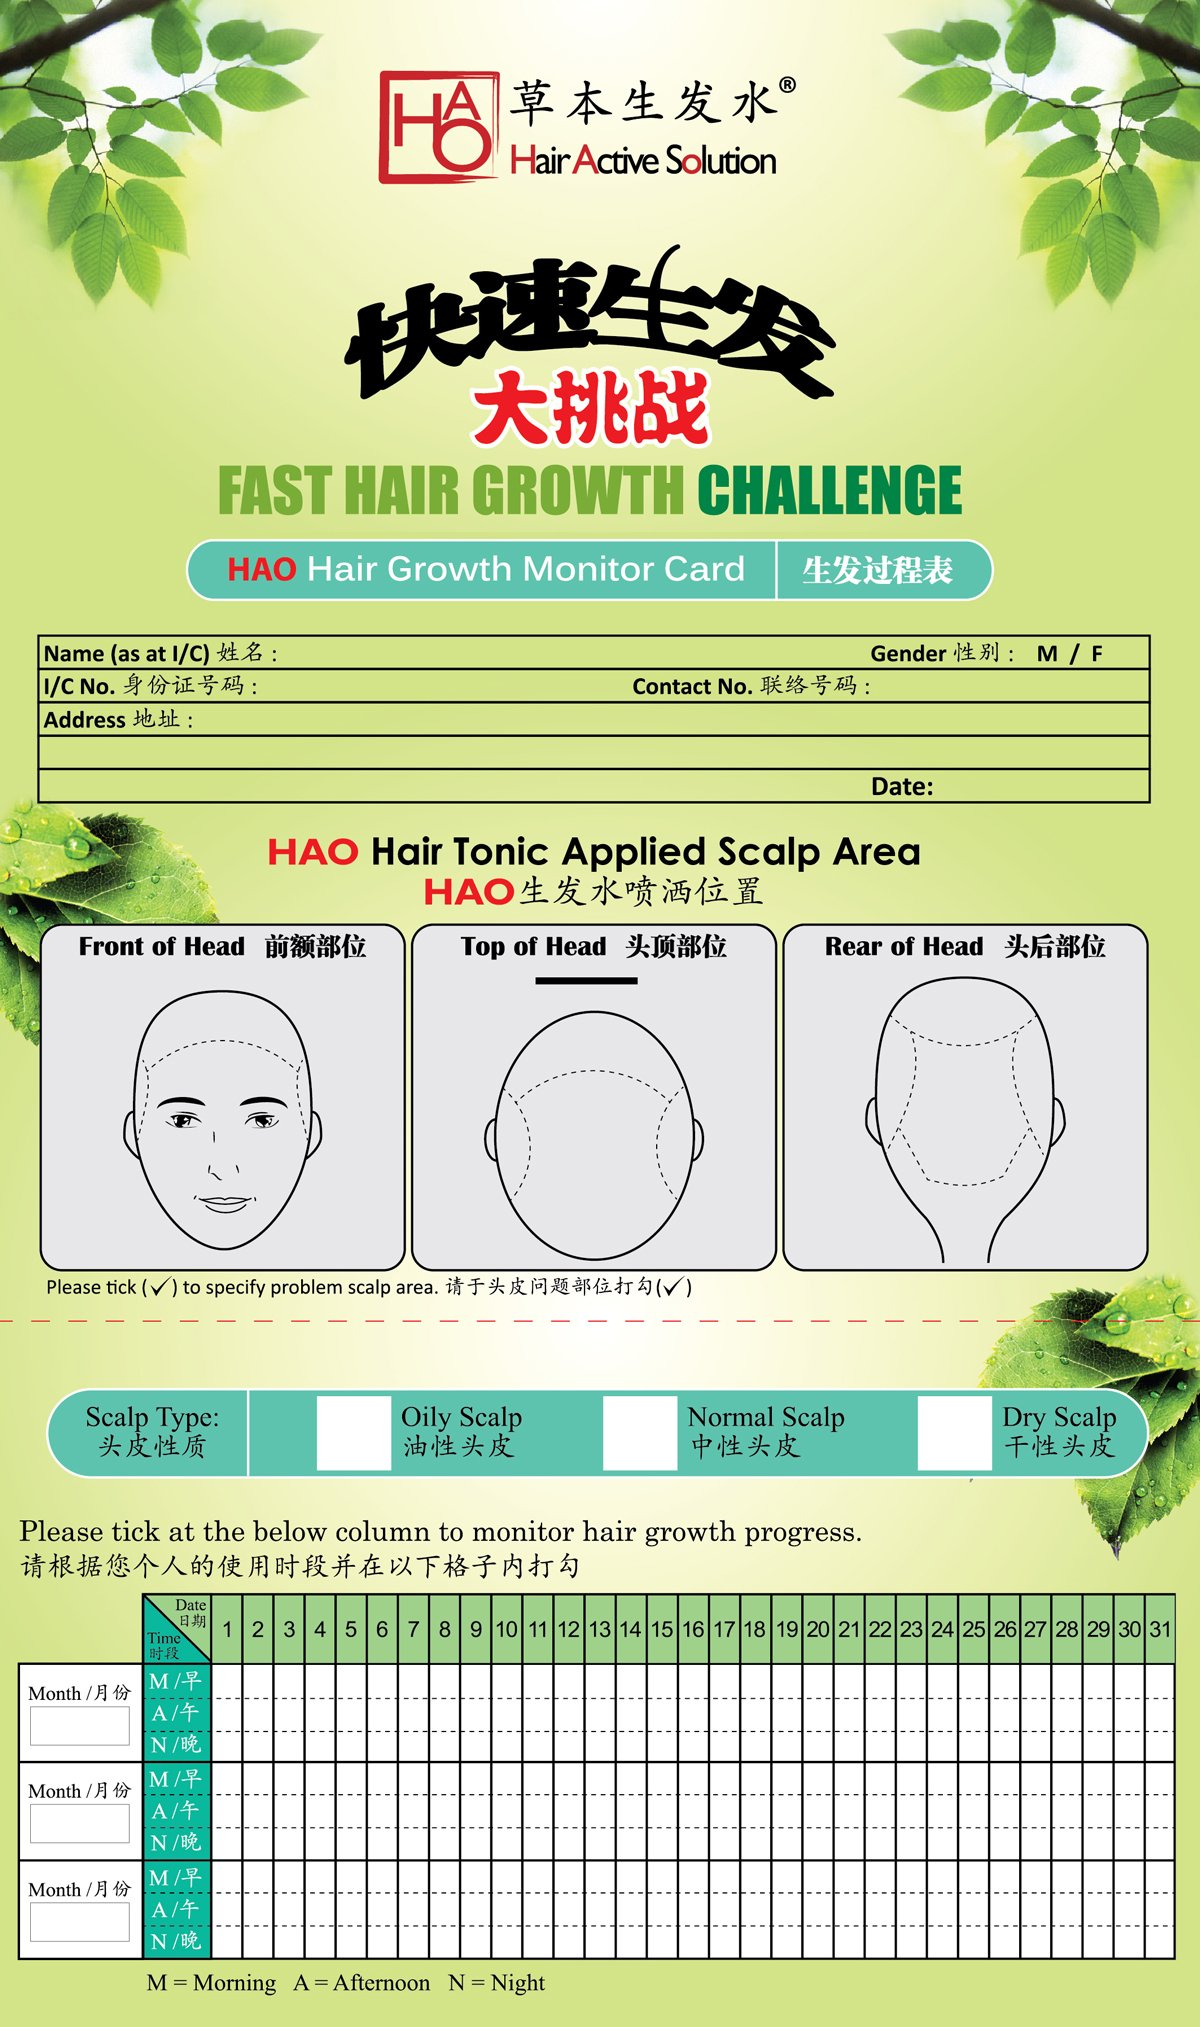 Fast Hair Growth Challenge - Monitor Card